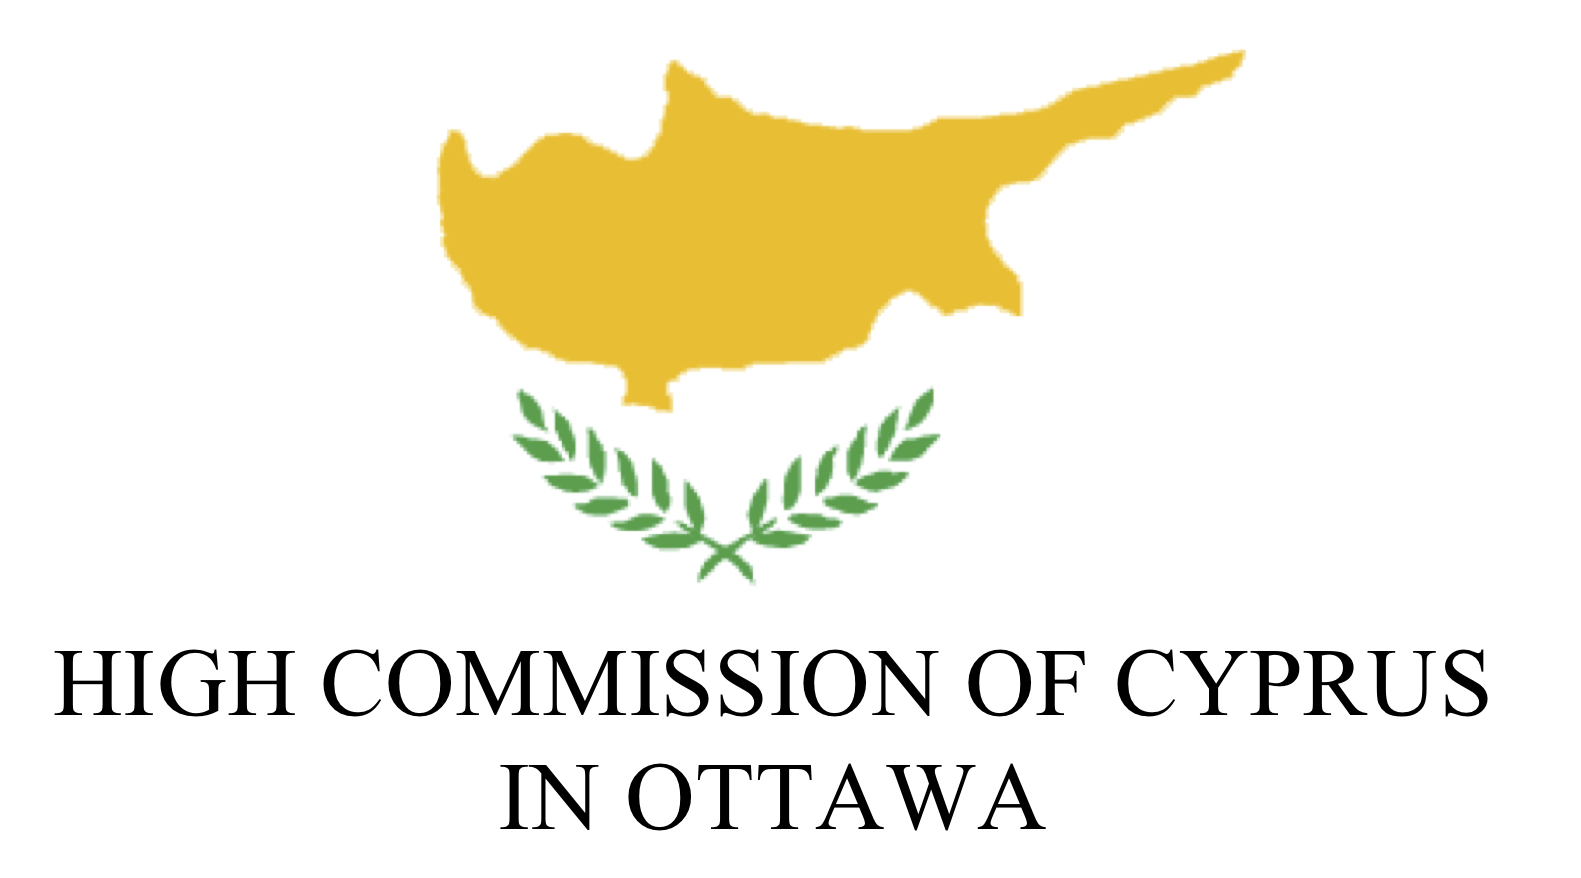 High Commission of Cyprus